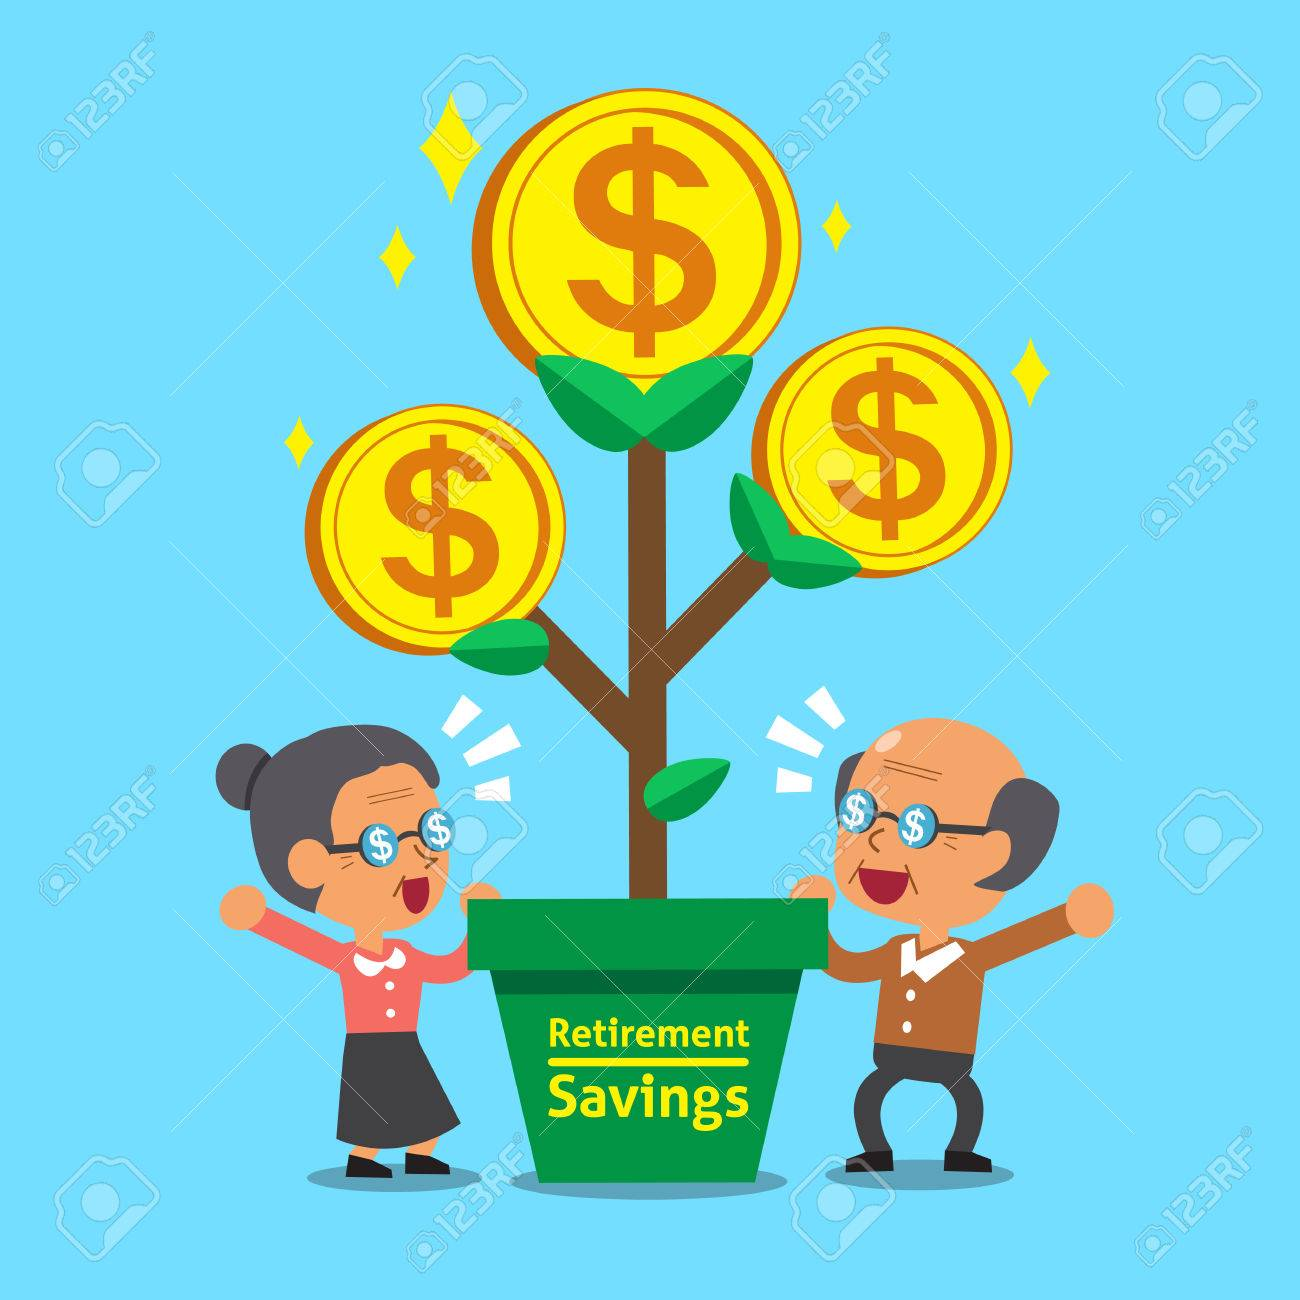 Cartoon Senior People With Retirement Savings Money Tree Royalty Free Cliparts Vectors And Stock Illustration Image 48758040 As you can see, this chart shows cartoons and those who worked on them. cartoon senior people with retirement savings money tree